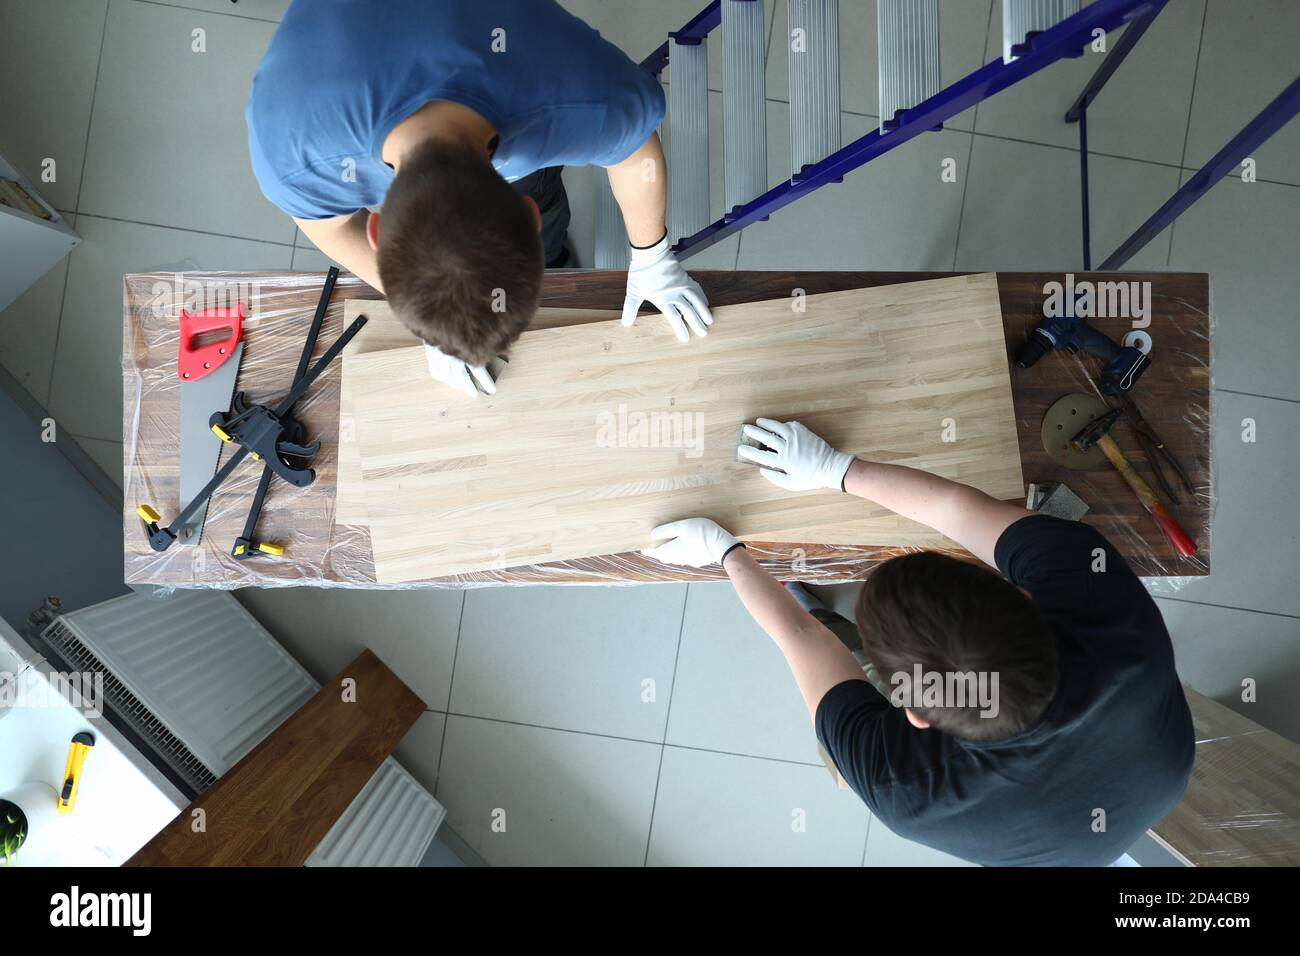 Woodworkers in uniform at workplace Stock Photo